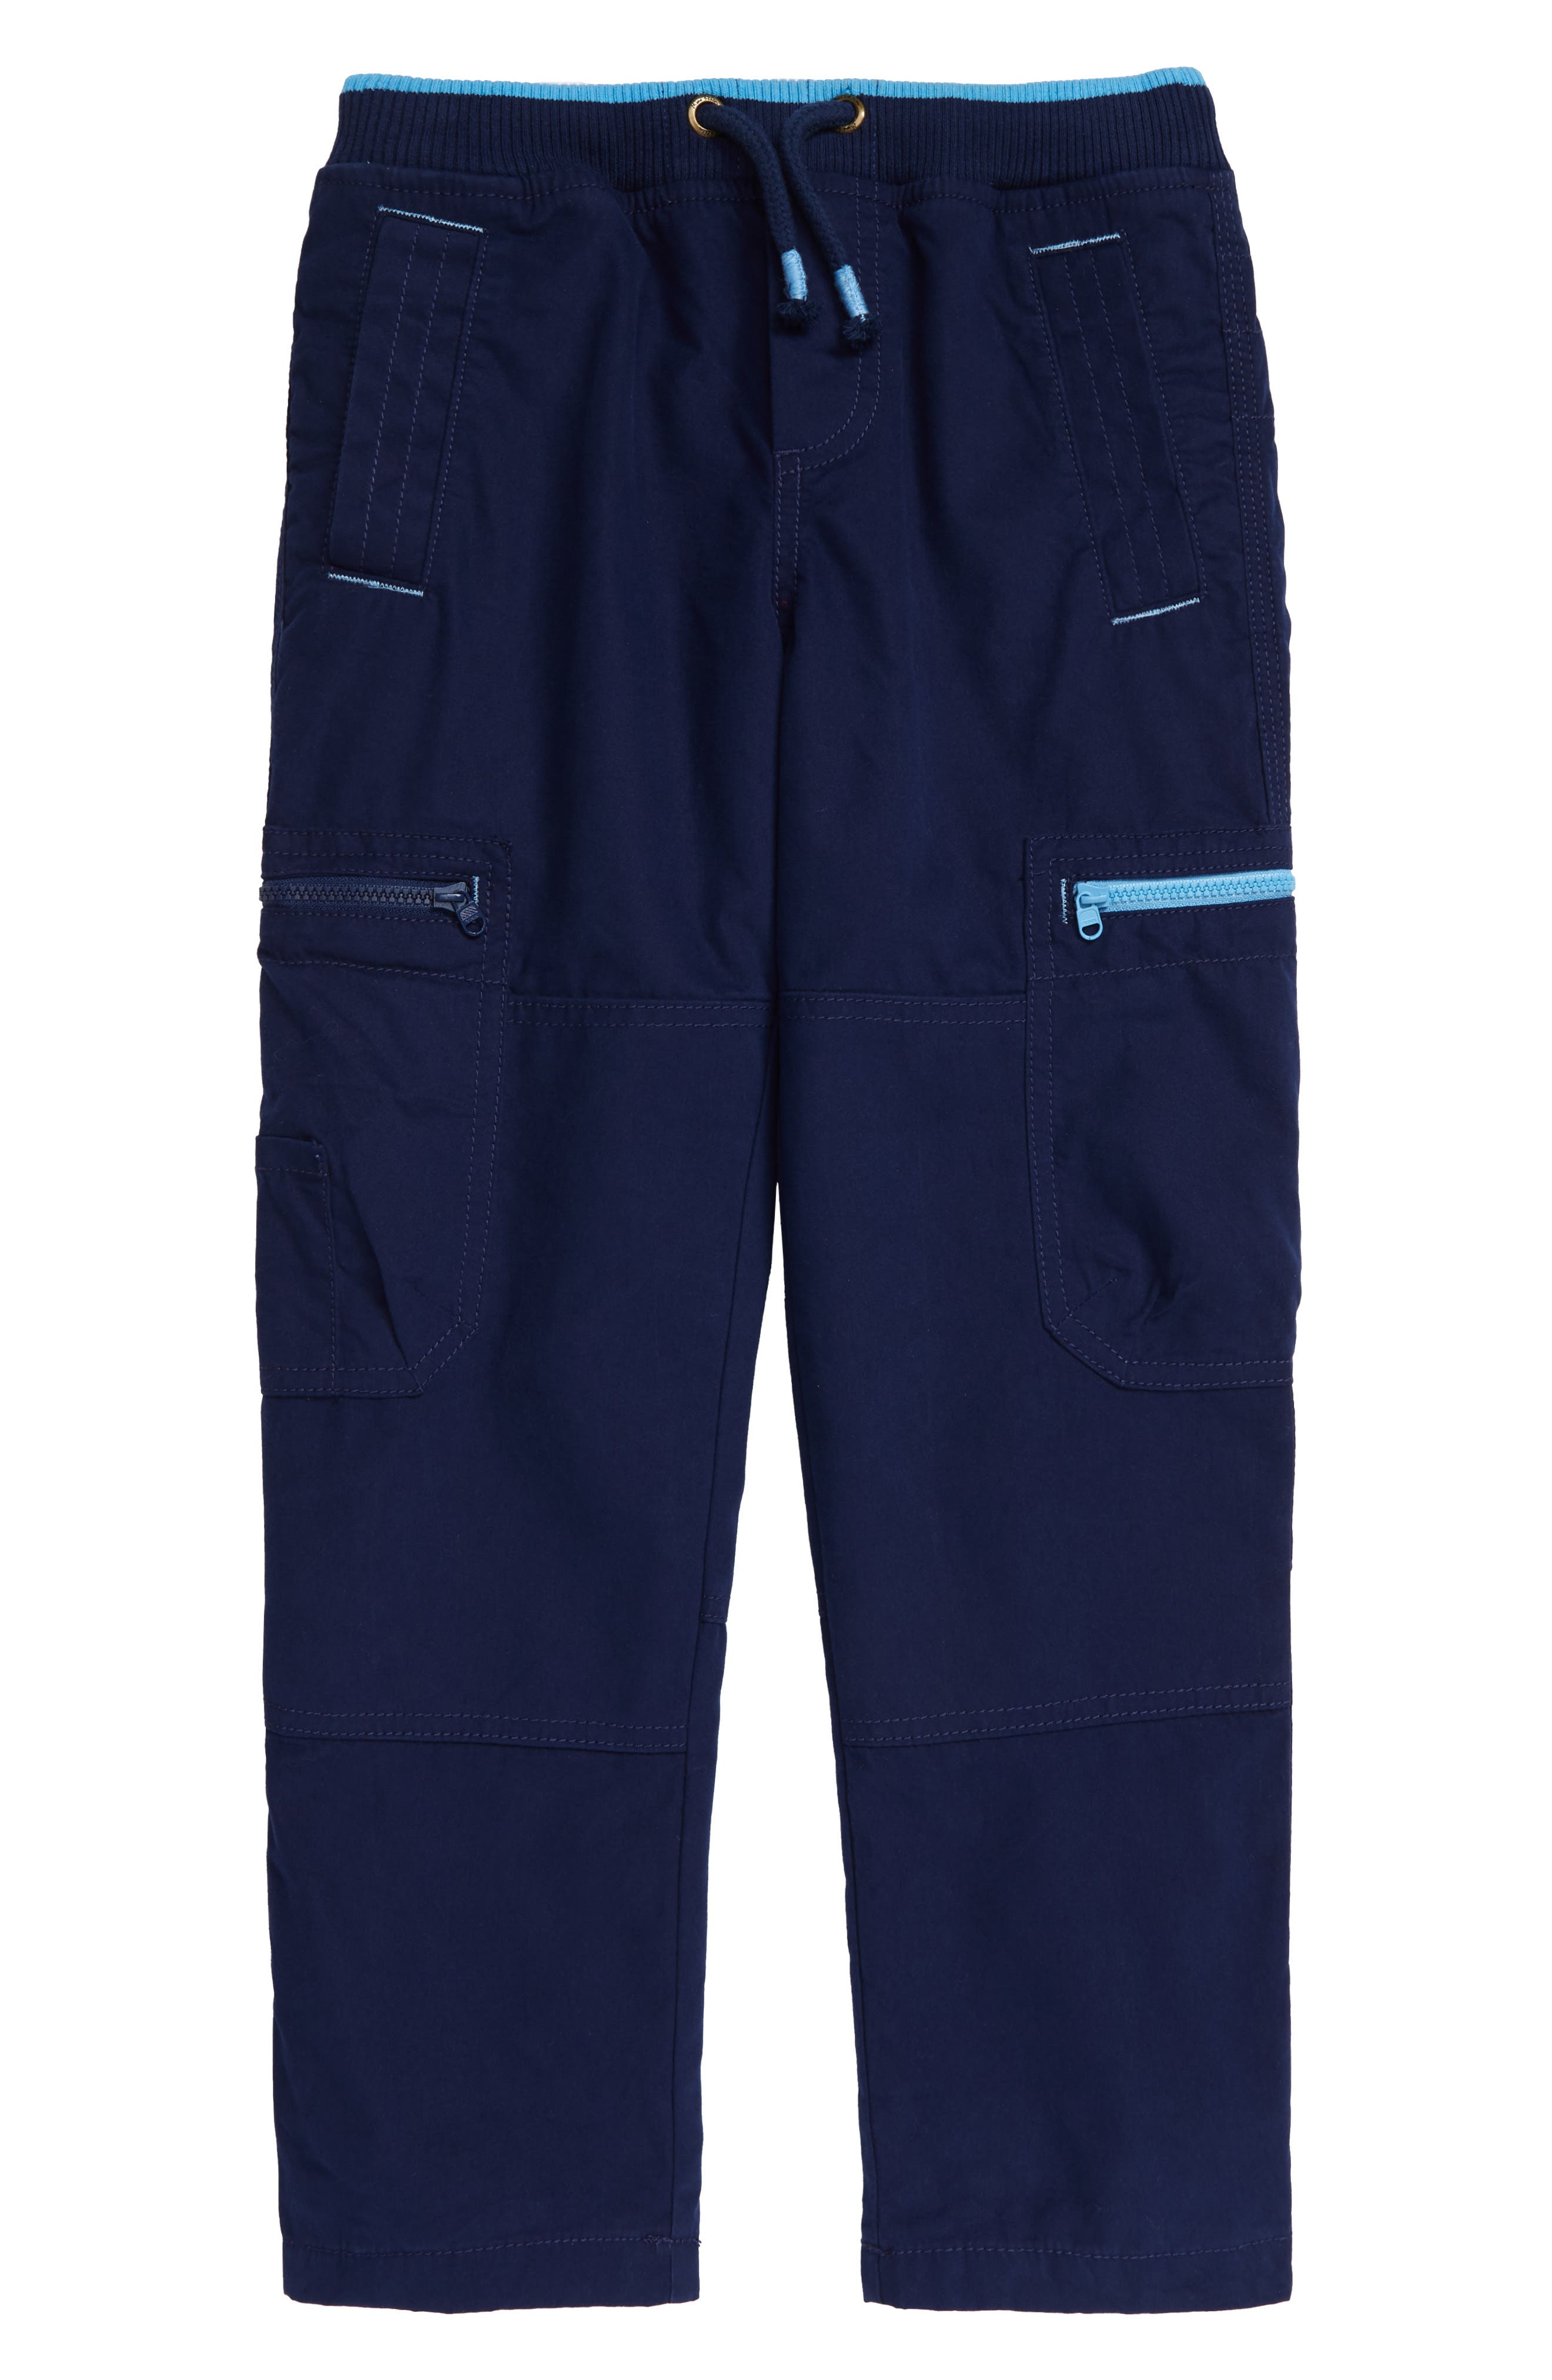 Every boy needs these sporty tie-waist pants that are lined for warmth and fitted with plenty of handy pockets. Style Name: Midi Boden Cozy Lined Cargo Pants (Toddler, Little Boy & Big Boy). Style Number: 6102259. Available in stores.